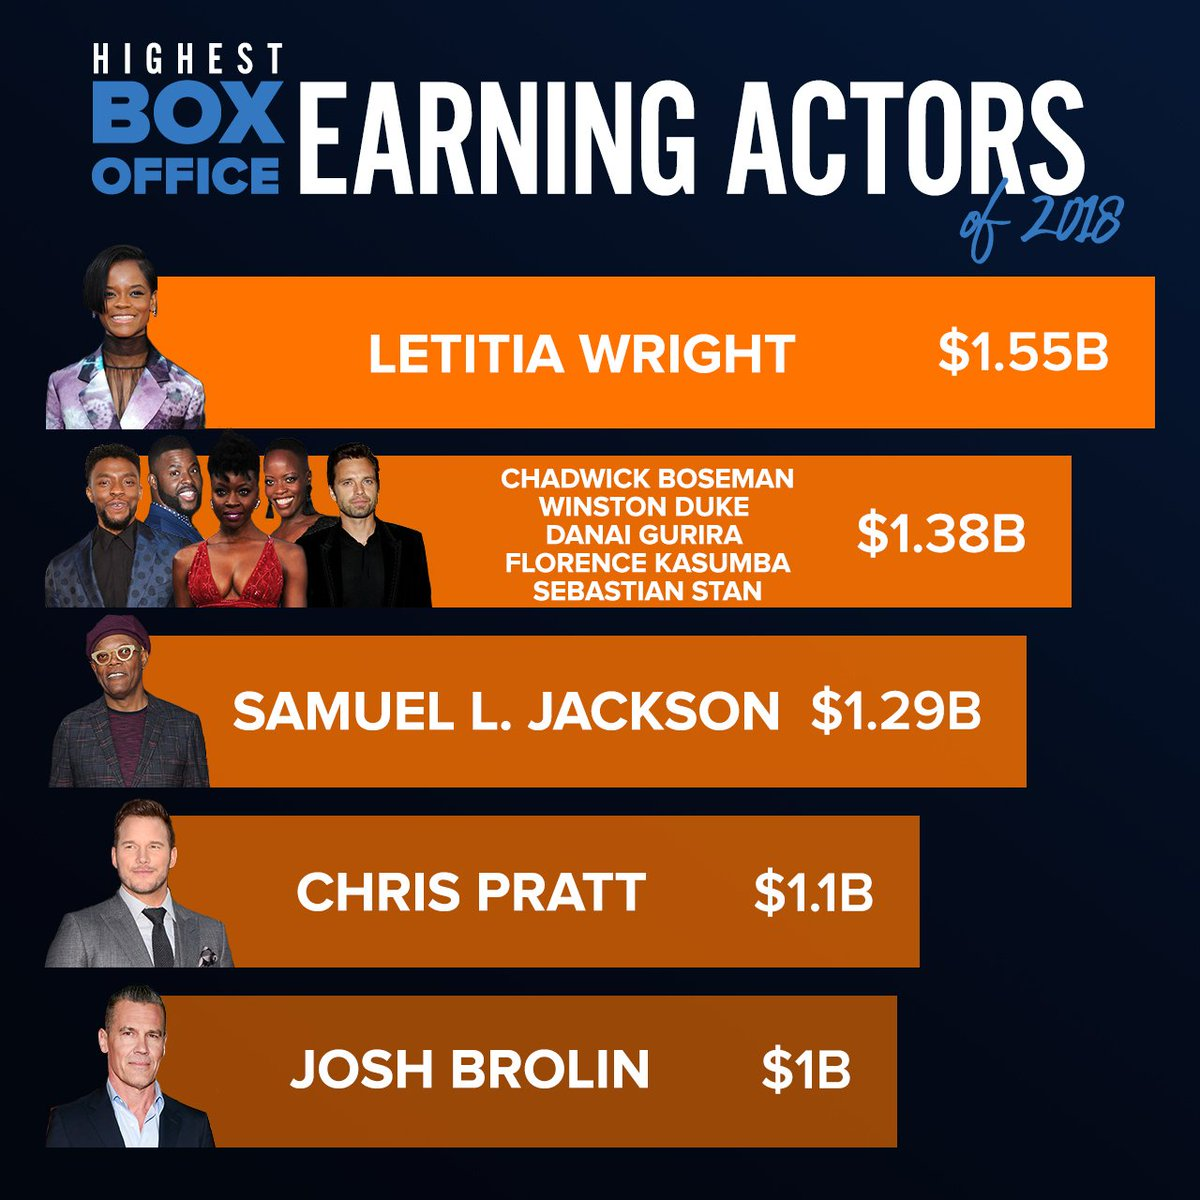 You'll Never Guess Which 'Black Panther' Star Was Crowned the Highest Box-Office Earning Actor of 2018